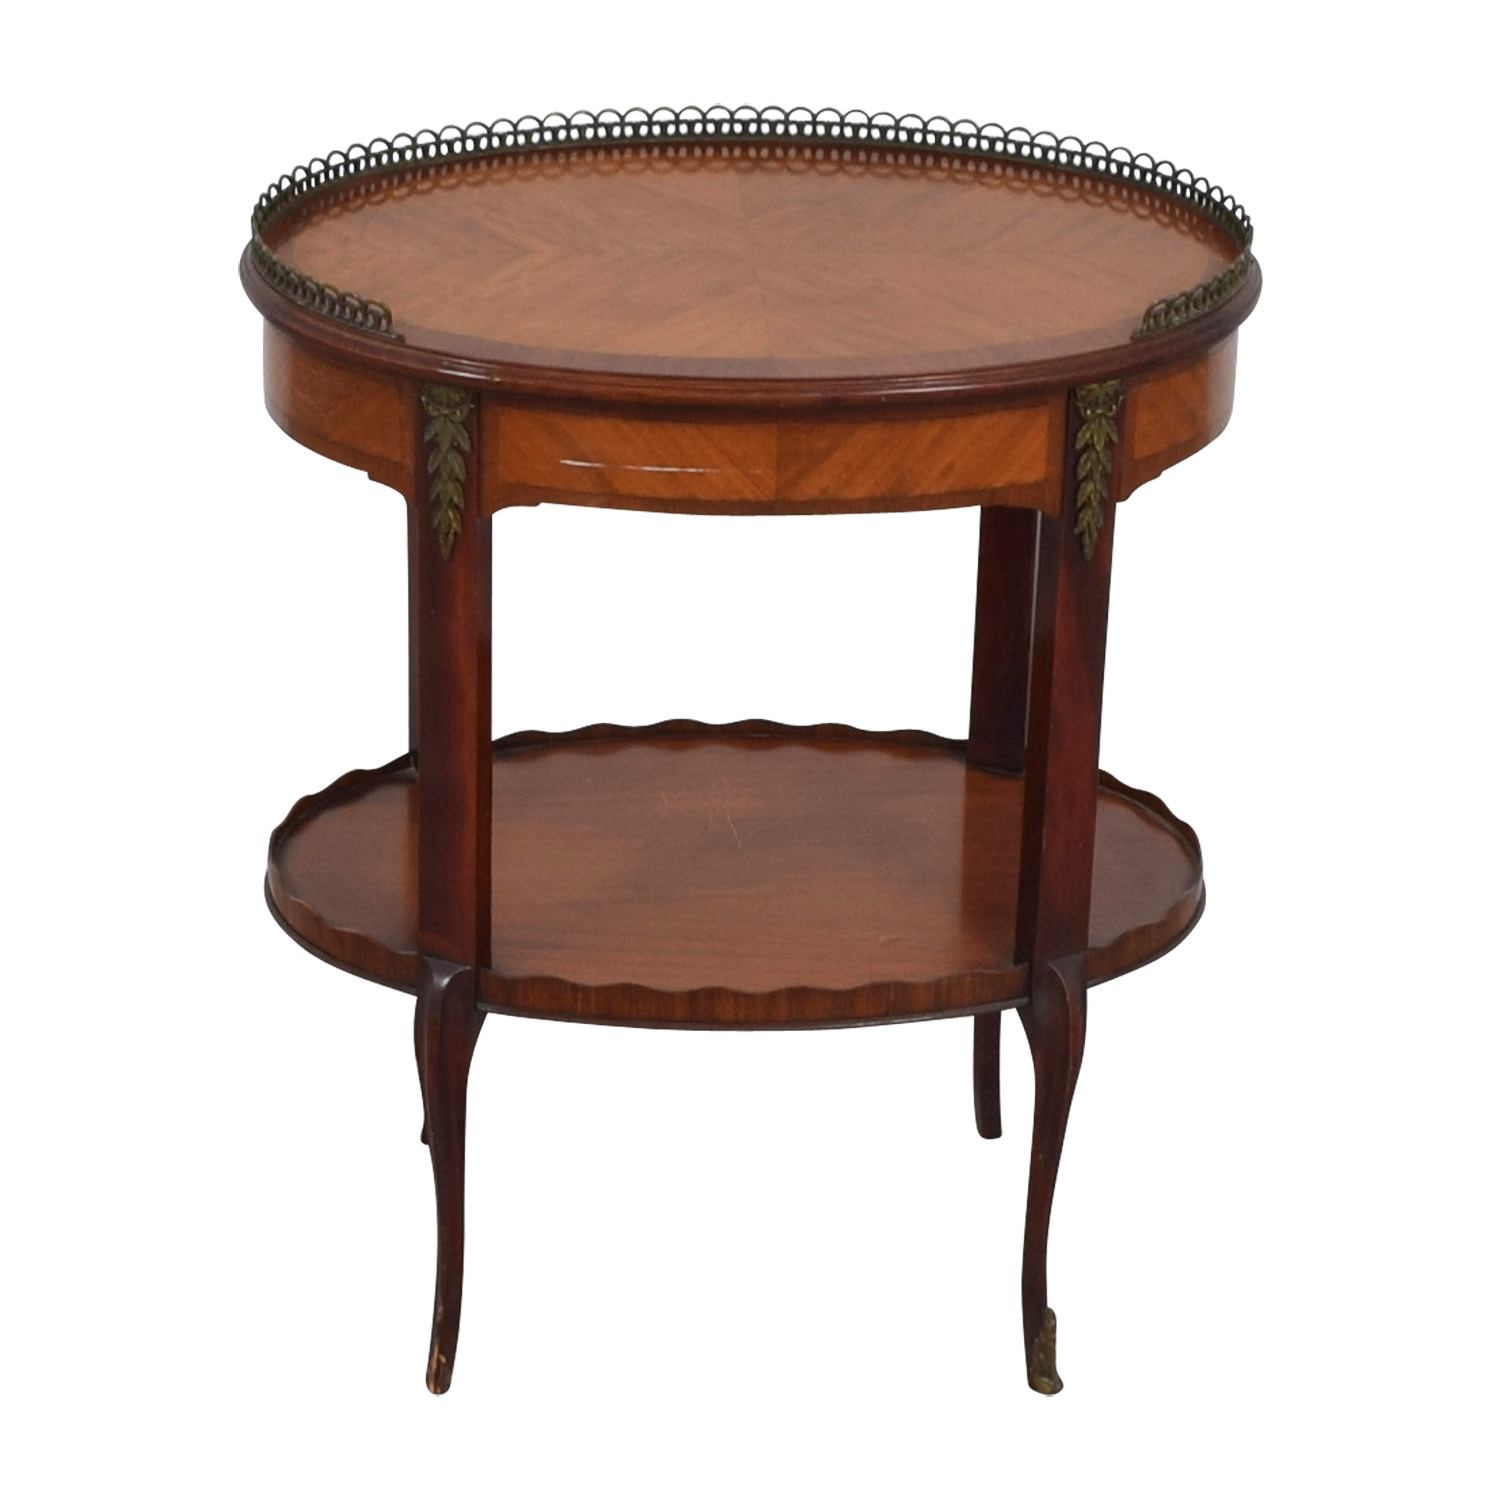 Furniture Masters Oval End Table with Scalloped and Brass Edges / Tables